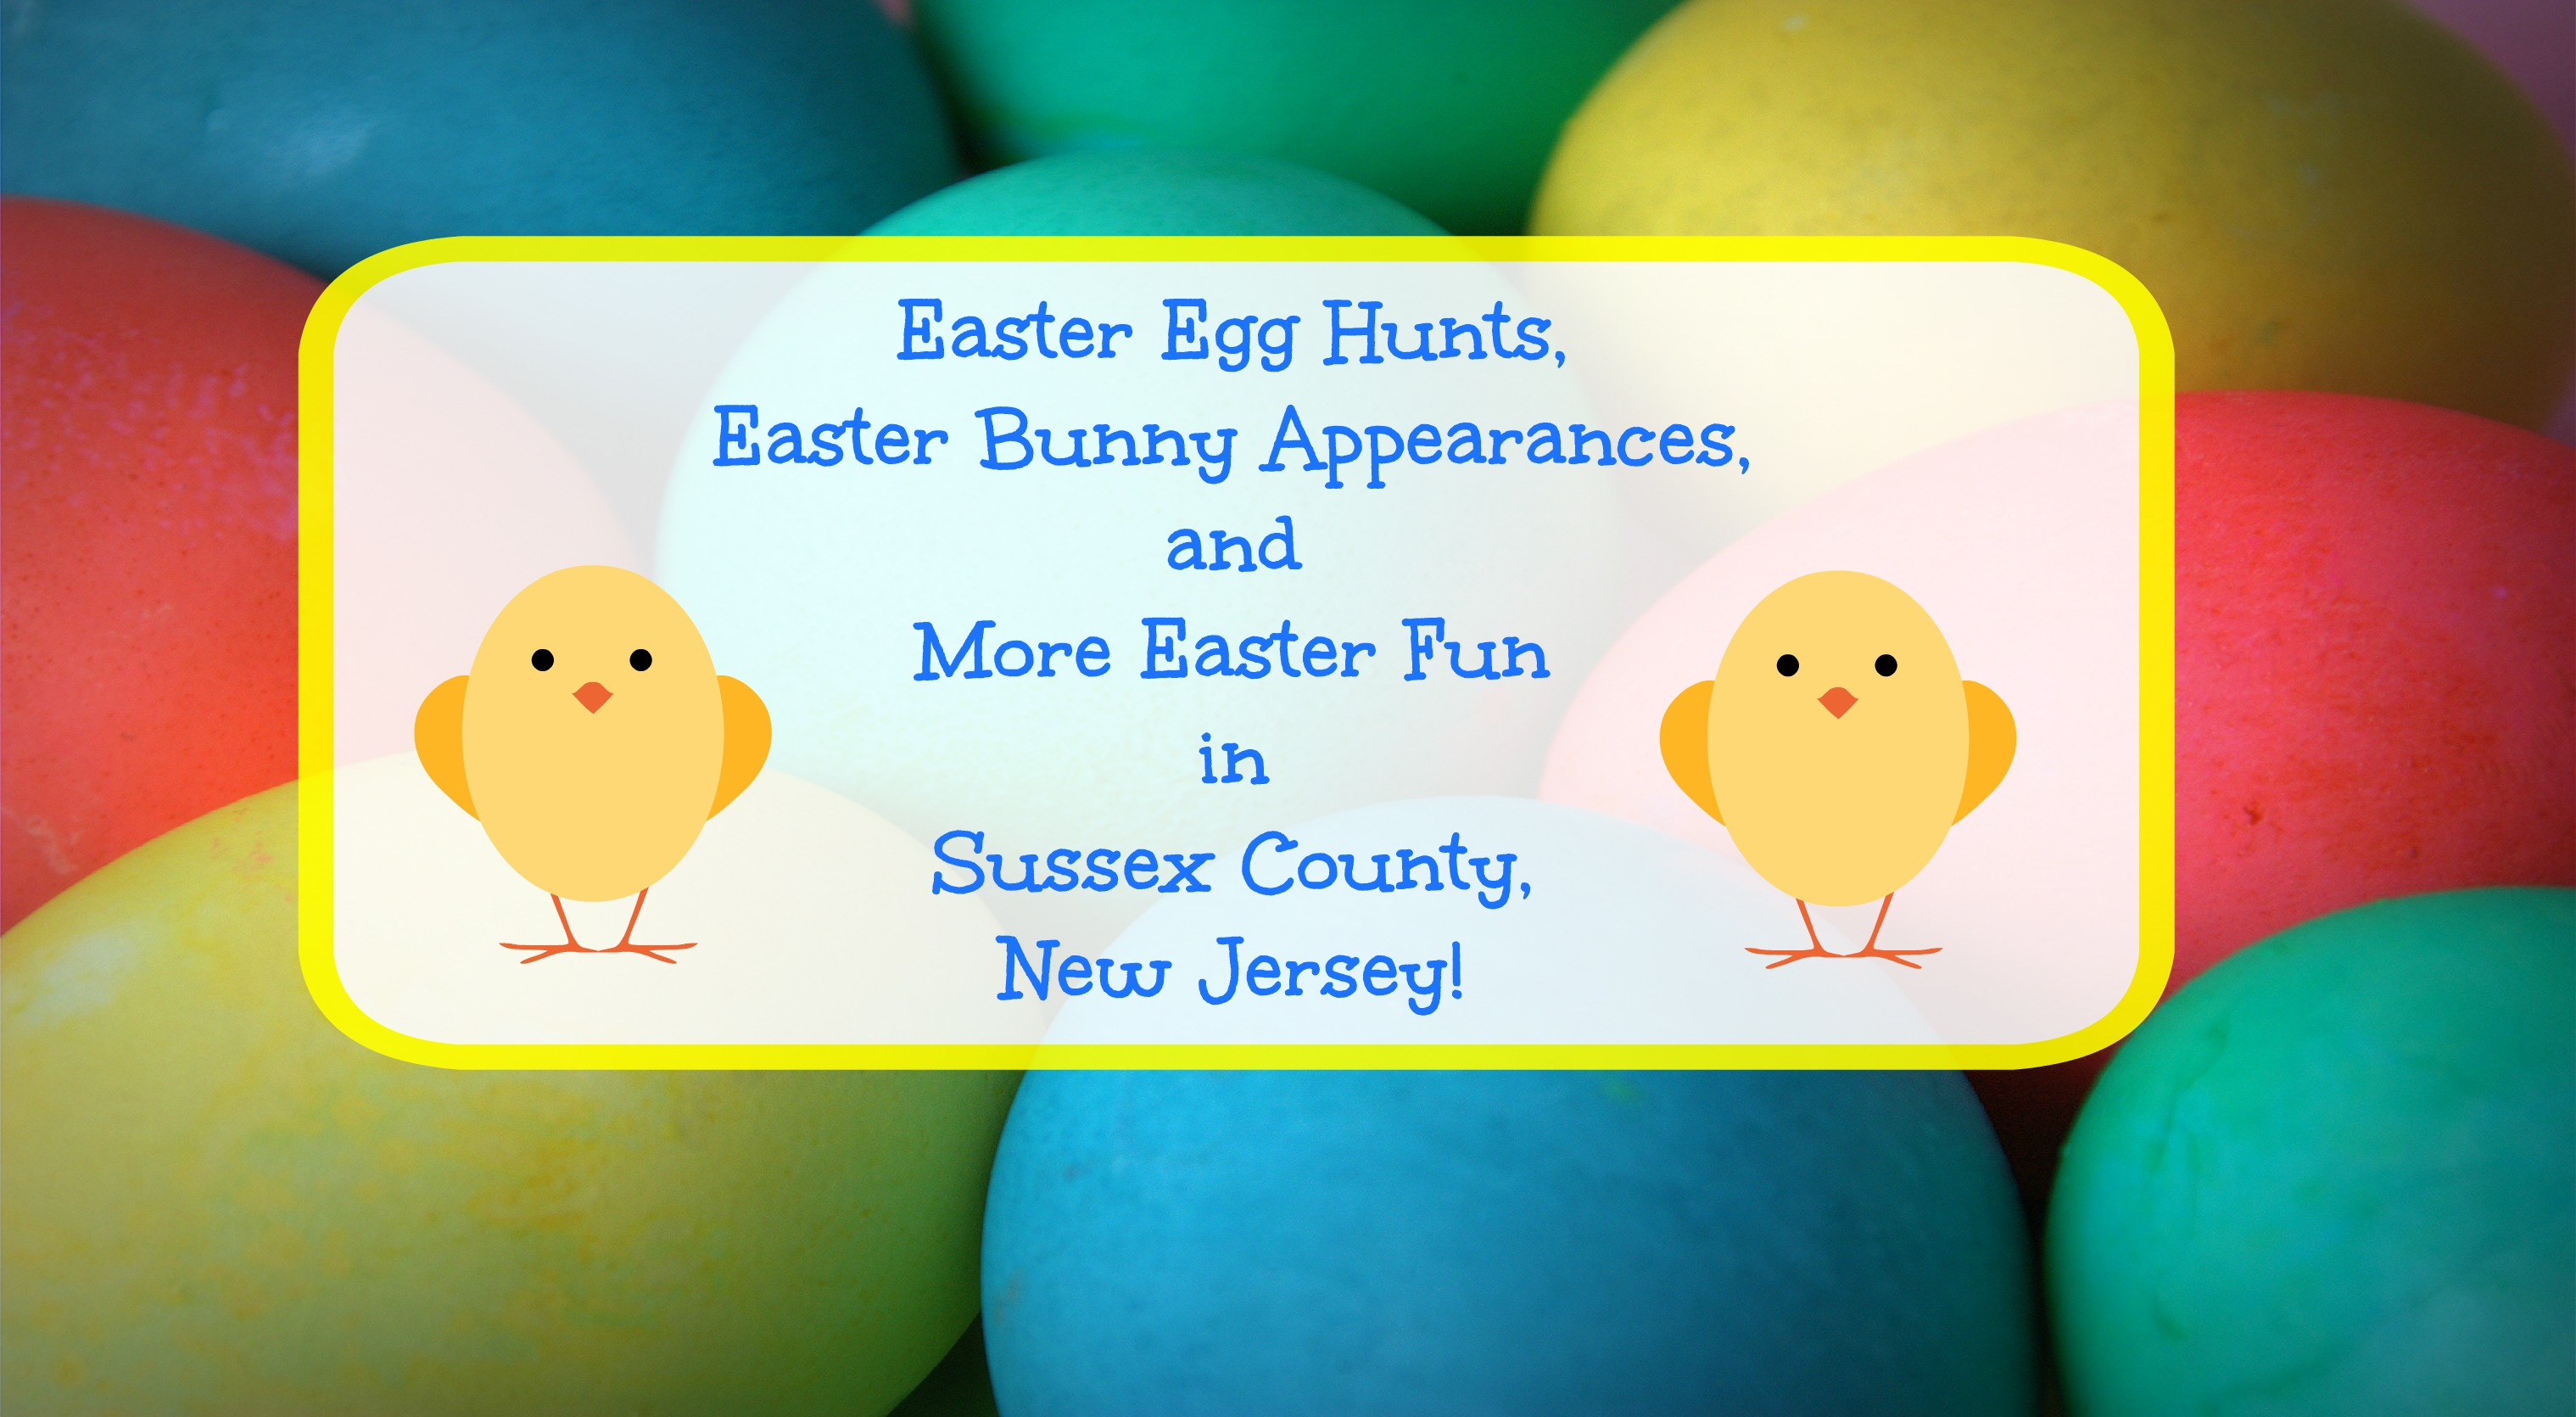 New jersey sussex county vernon - Fun Easter Events In Sussex County New Jersey Things To Do In New Jersey